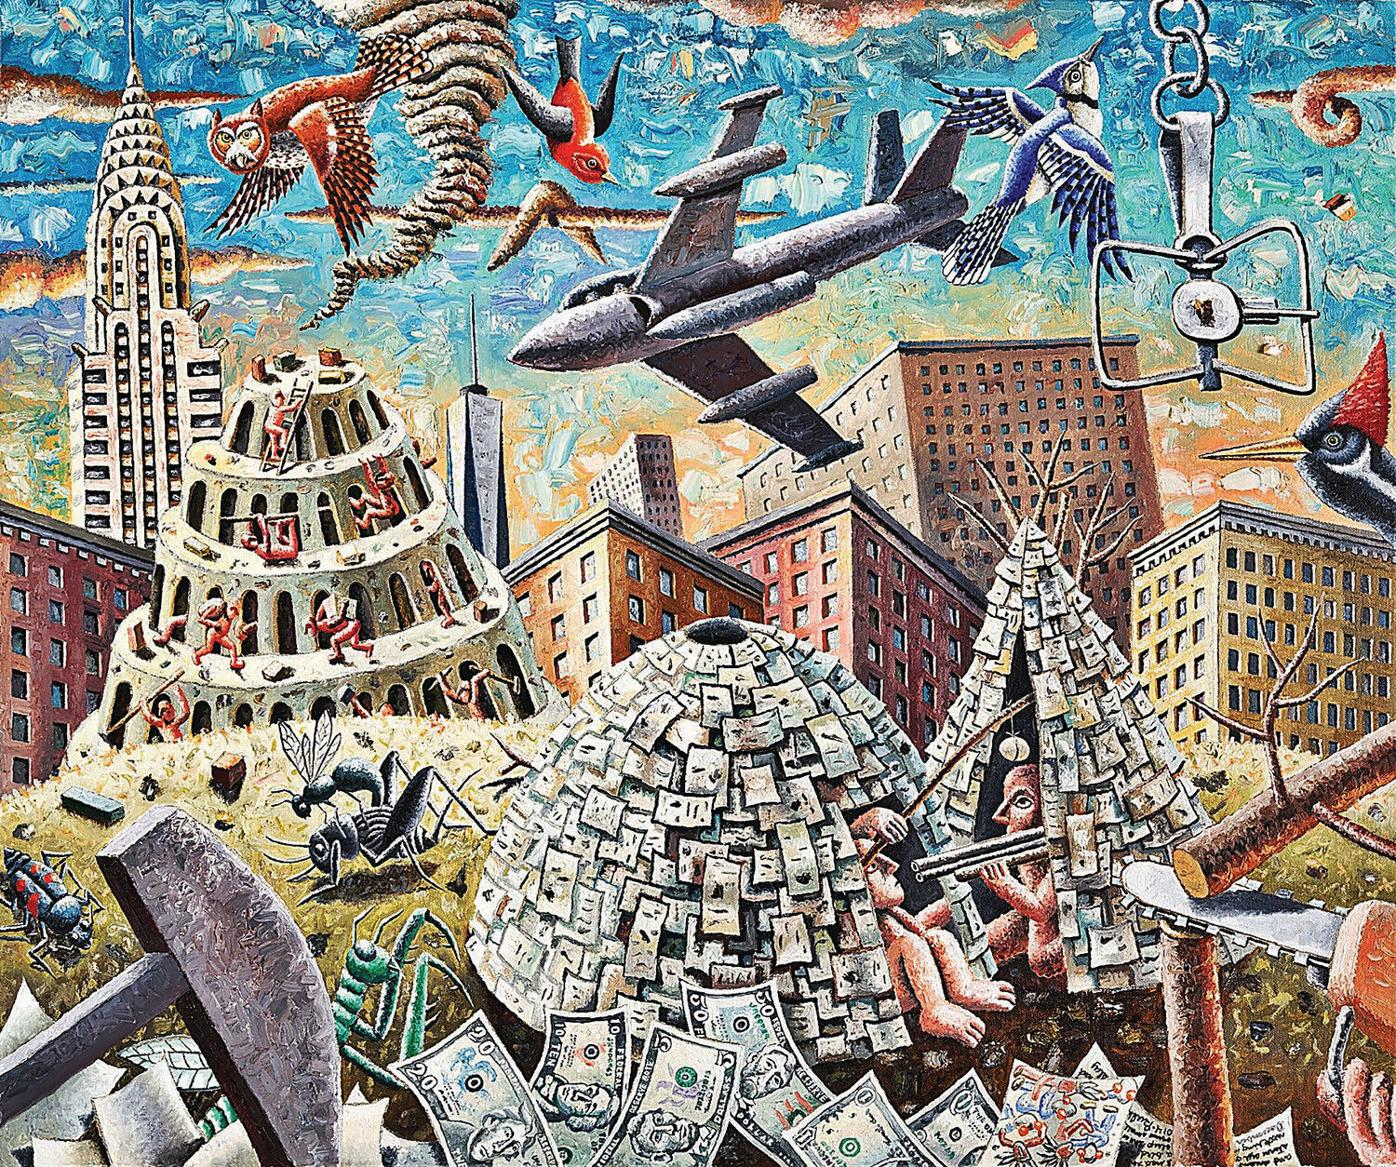 Artist Morgan Bulkeley searches for hope amid rubble of despair in exhibit at Berkshire Museum